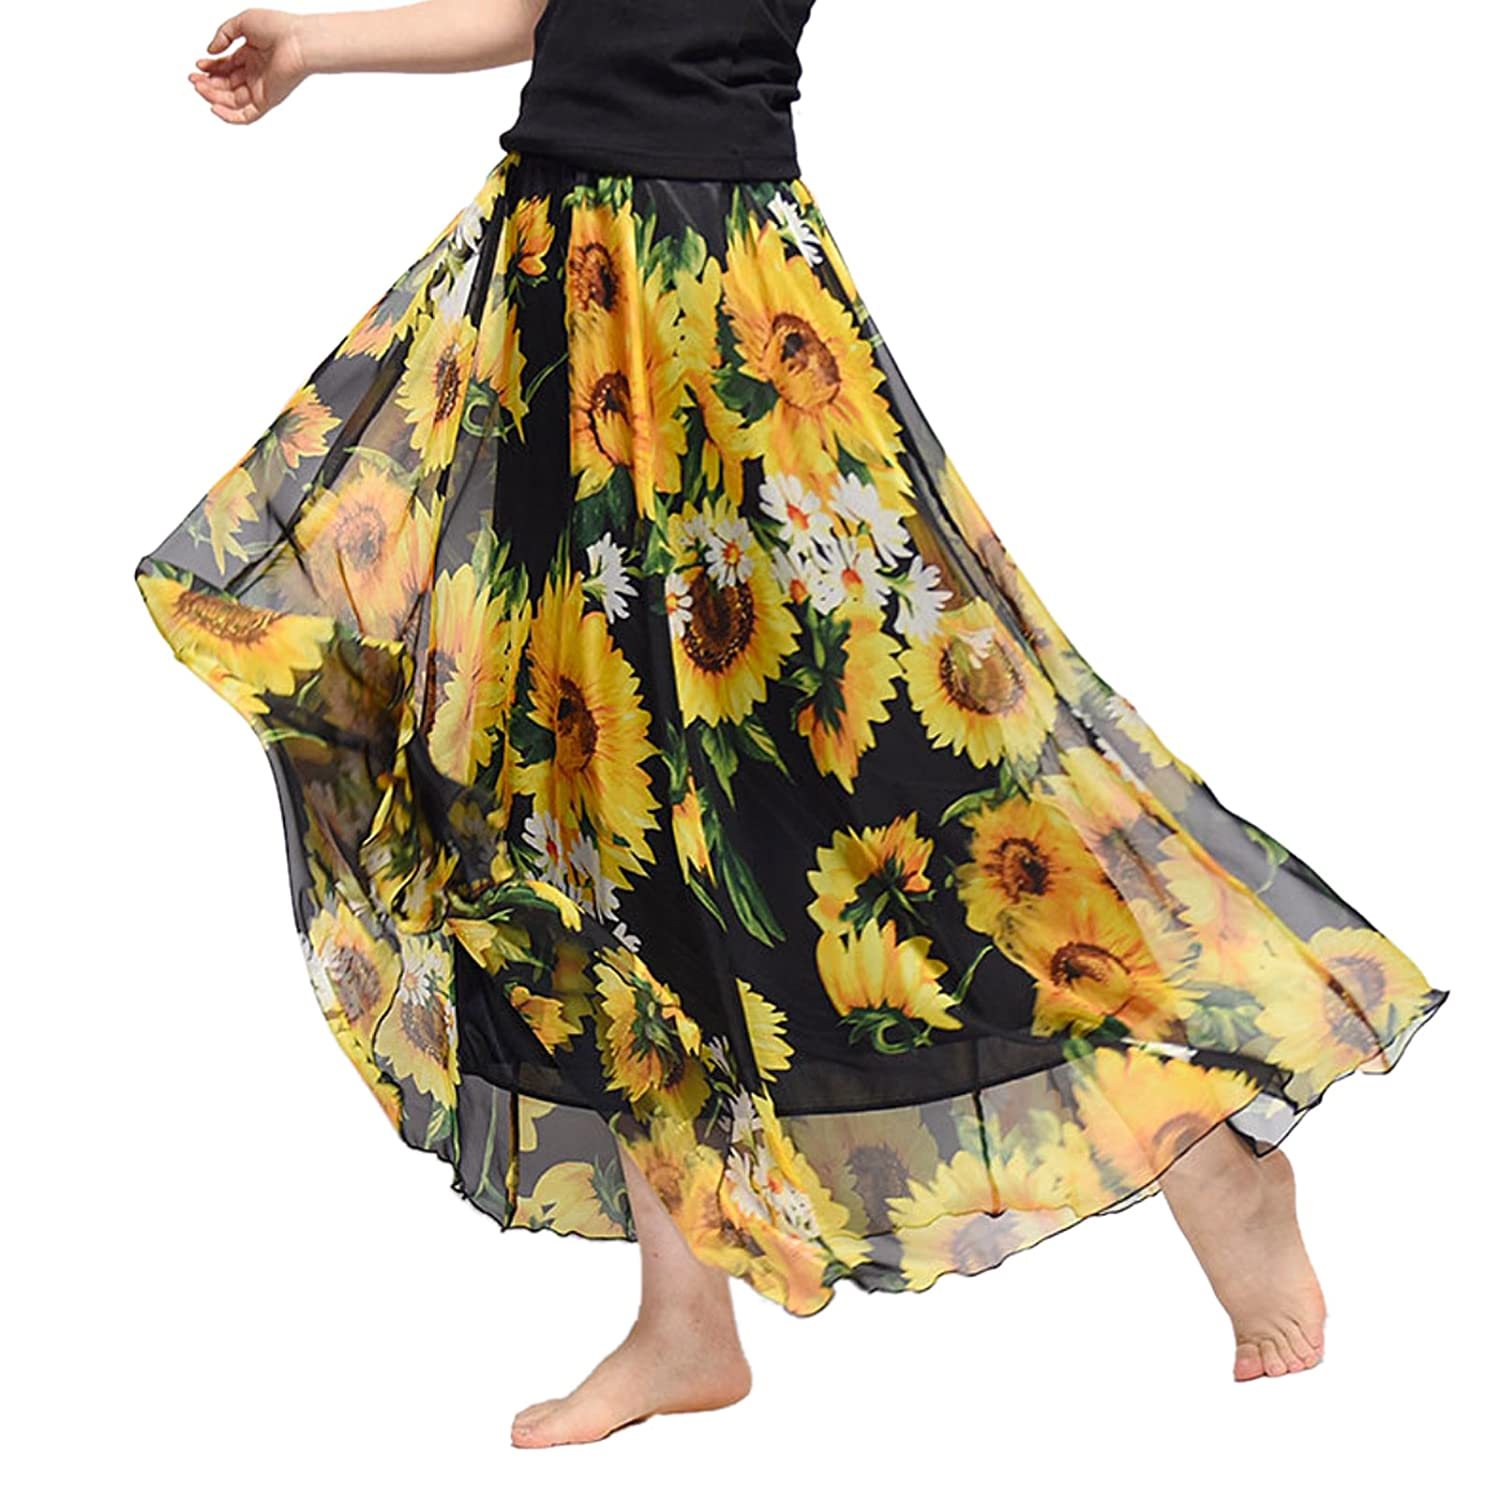 WSLCN Womens Floral Printing Chiffon Long Skirt Elastic Waist Beach Skirt with Lining QZ0380